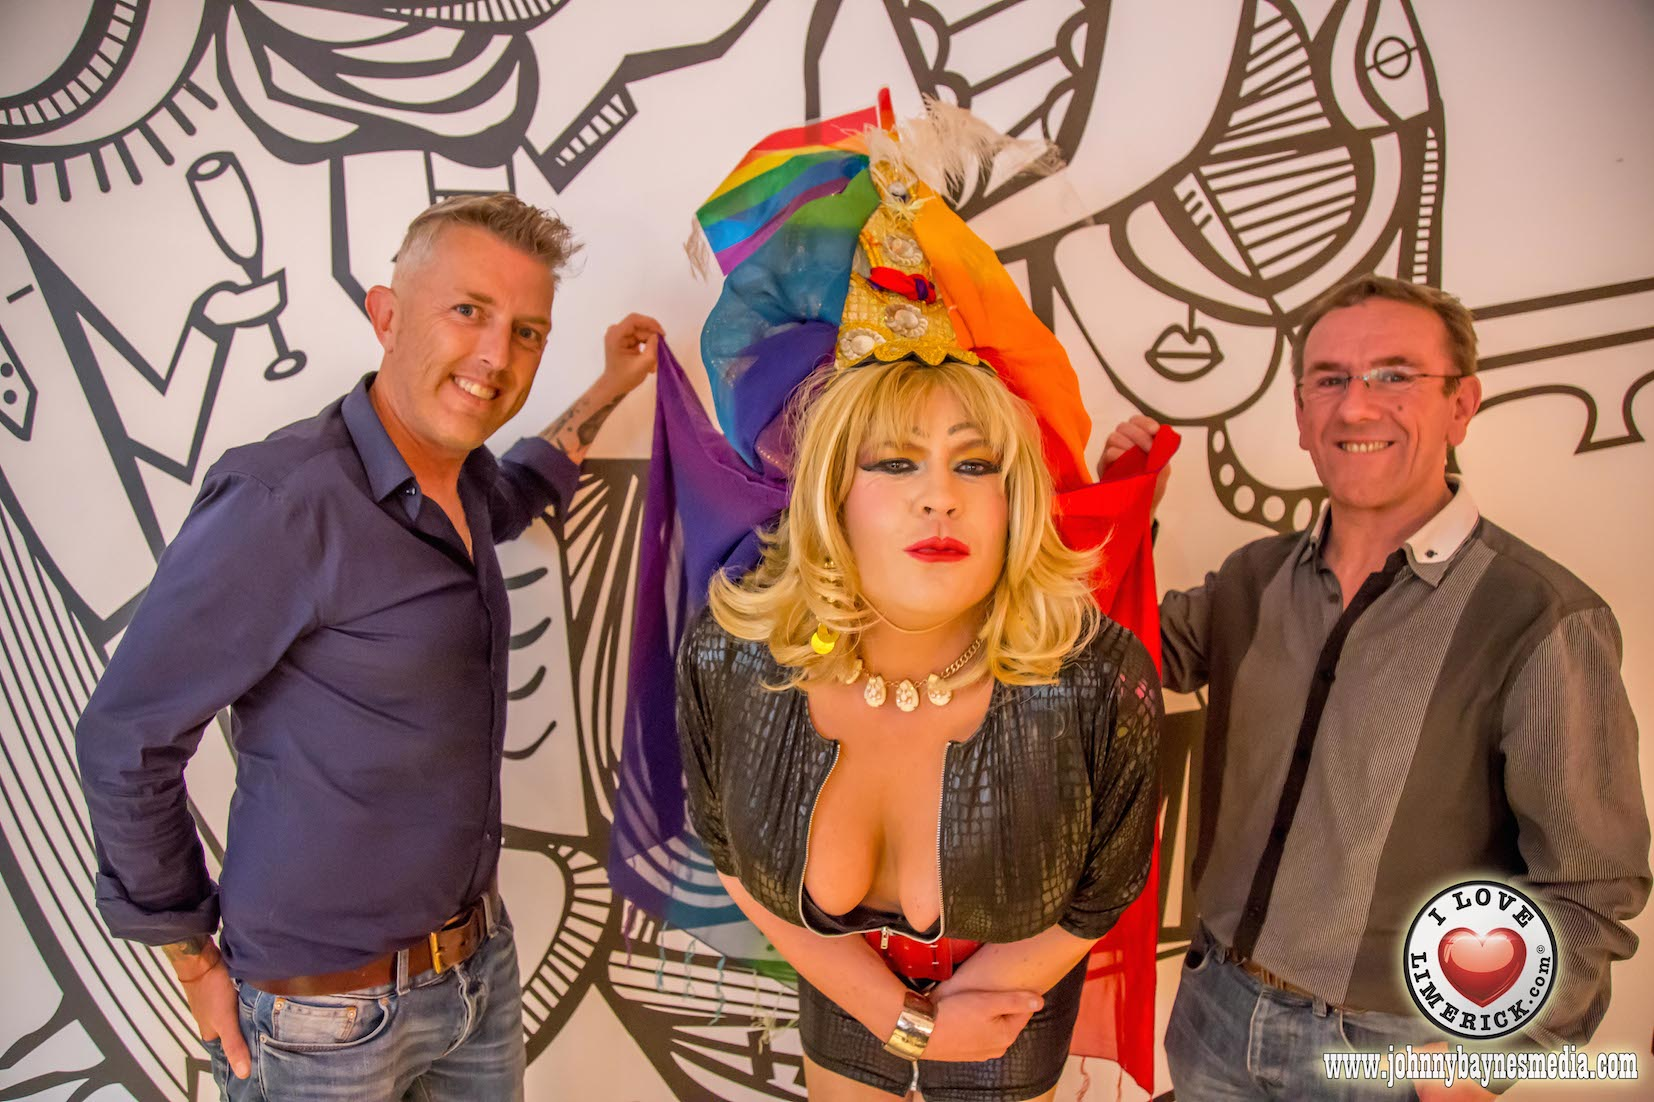 Eddie Mooney, Elsie Cox and Noel Deveraux, Strokers Bar at the press launch for Limerick LGBTI Pride Festival 2016 at the George Boutique Hotel. Picture: Johnny Baynes/ilovelimerick